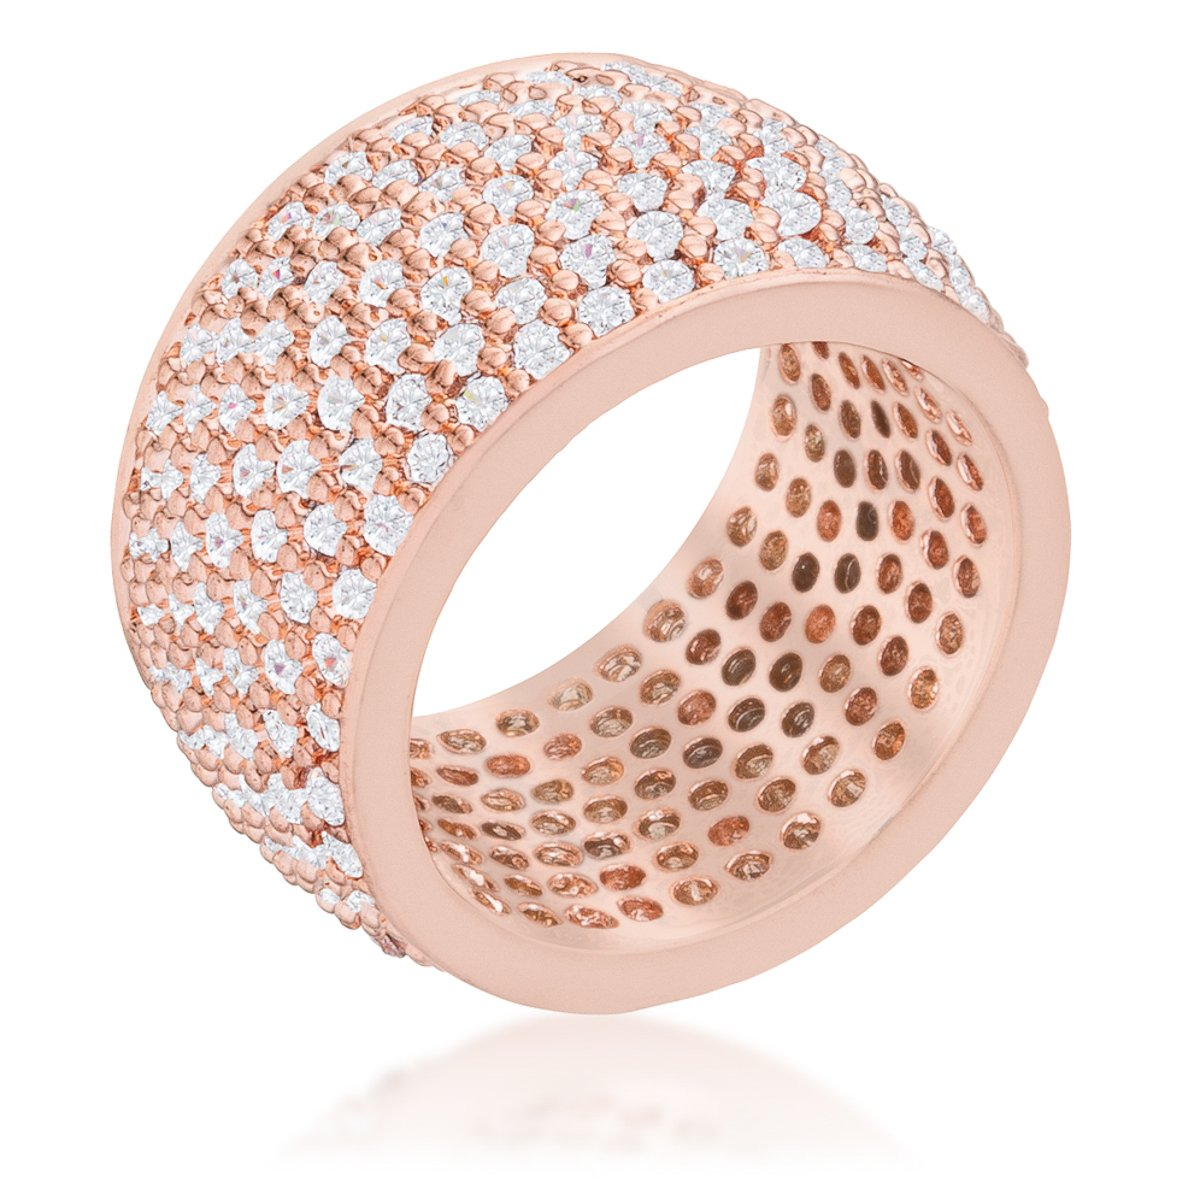 Wide Pave Cubic Zirconia Rose Gold Band Ring - R08448A-C01